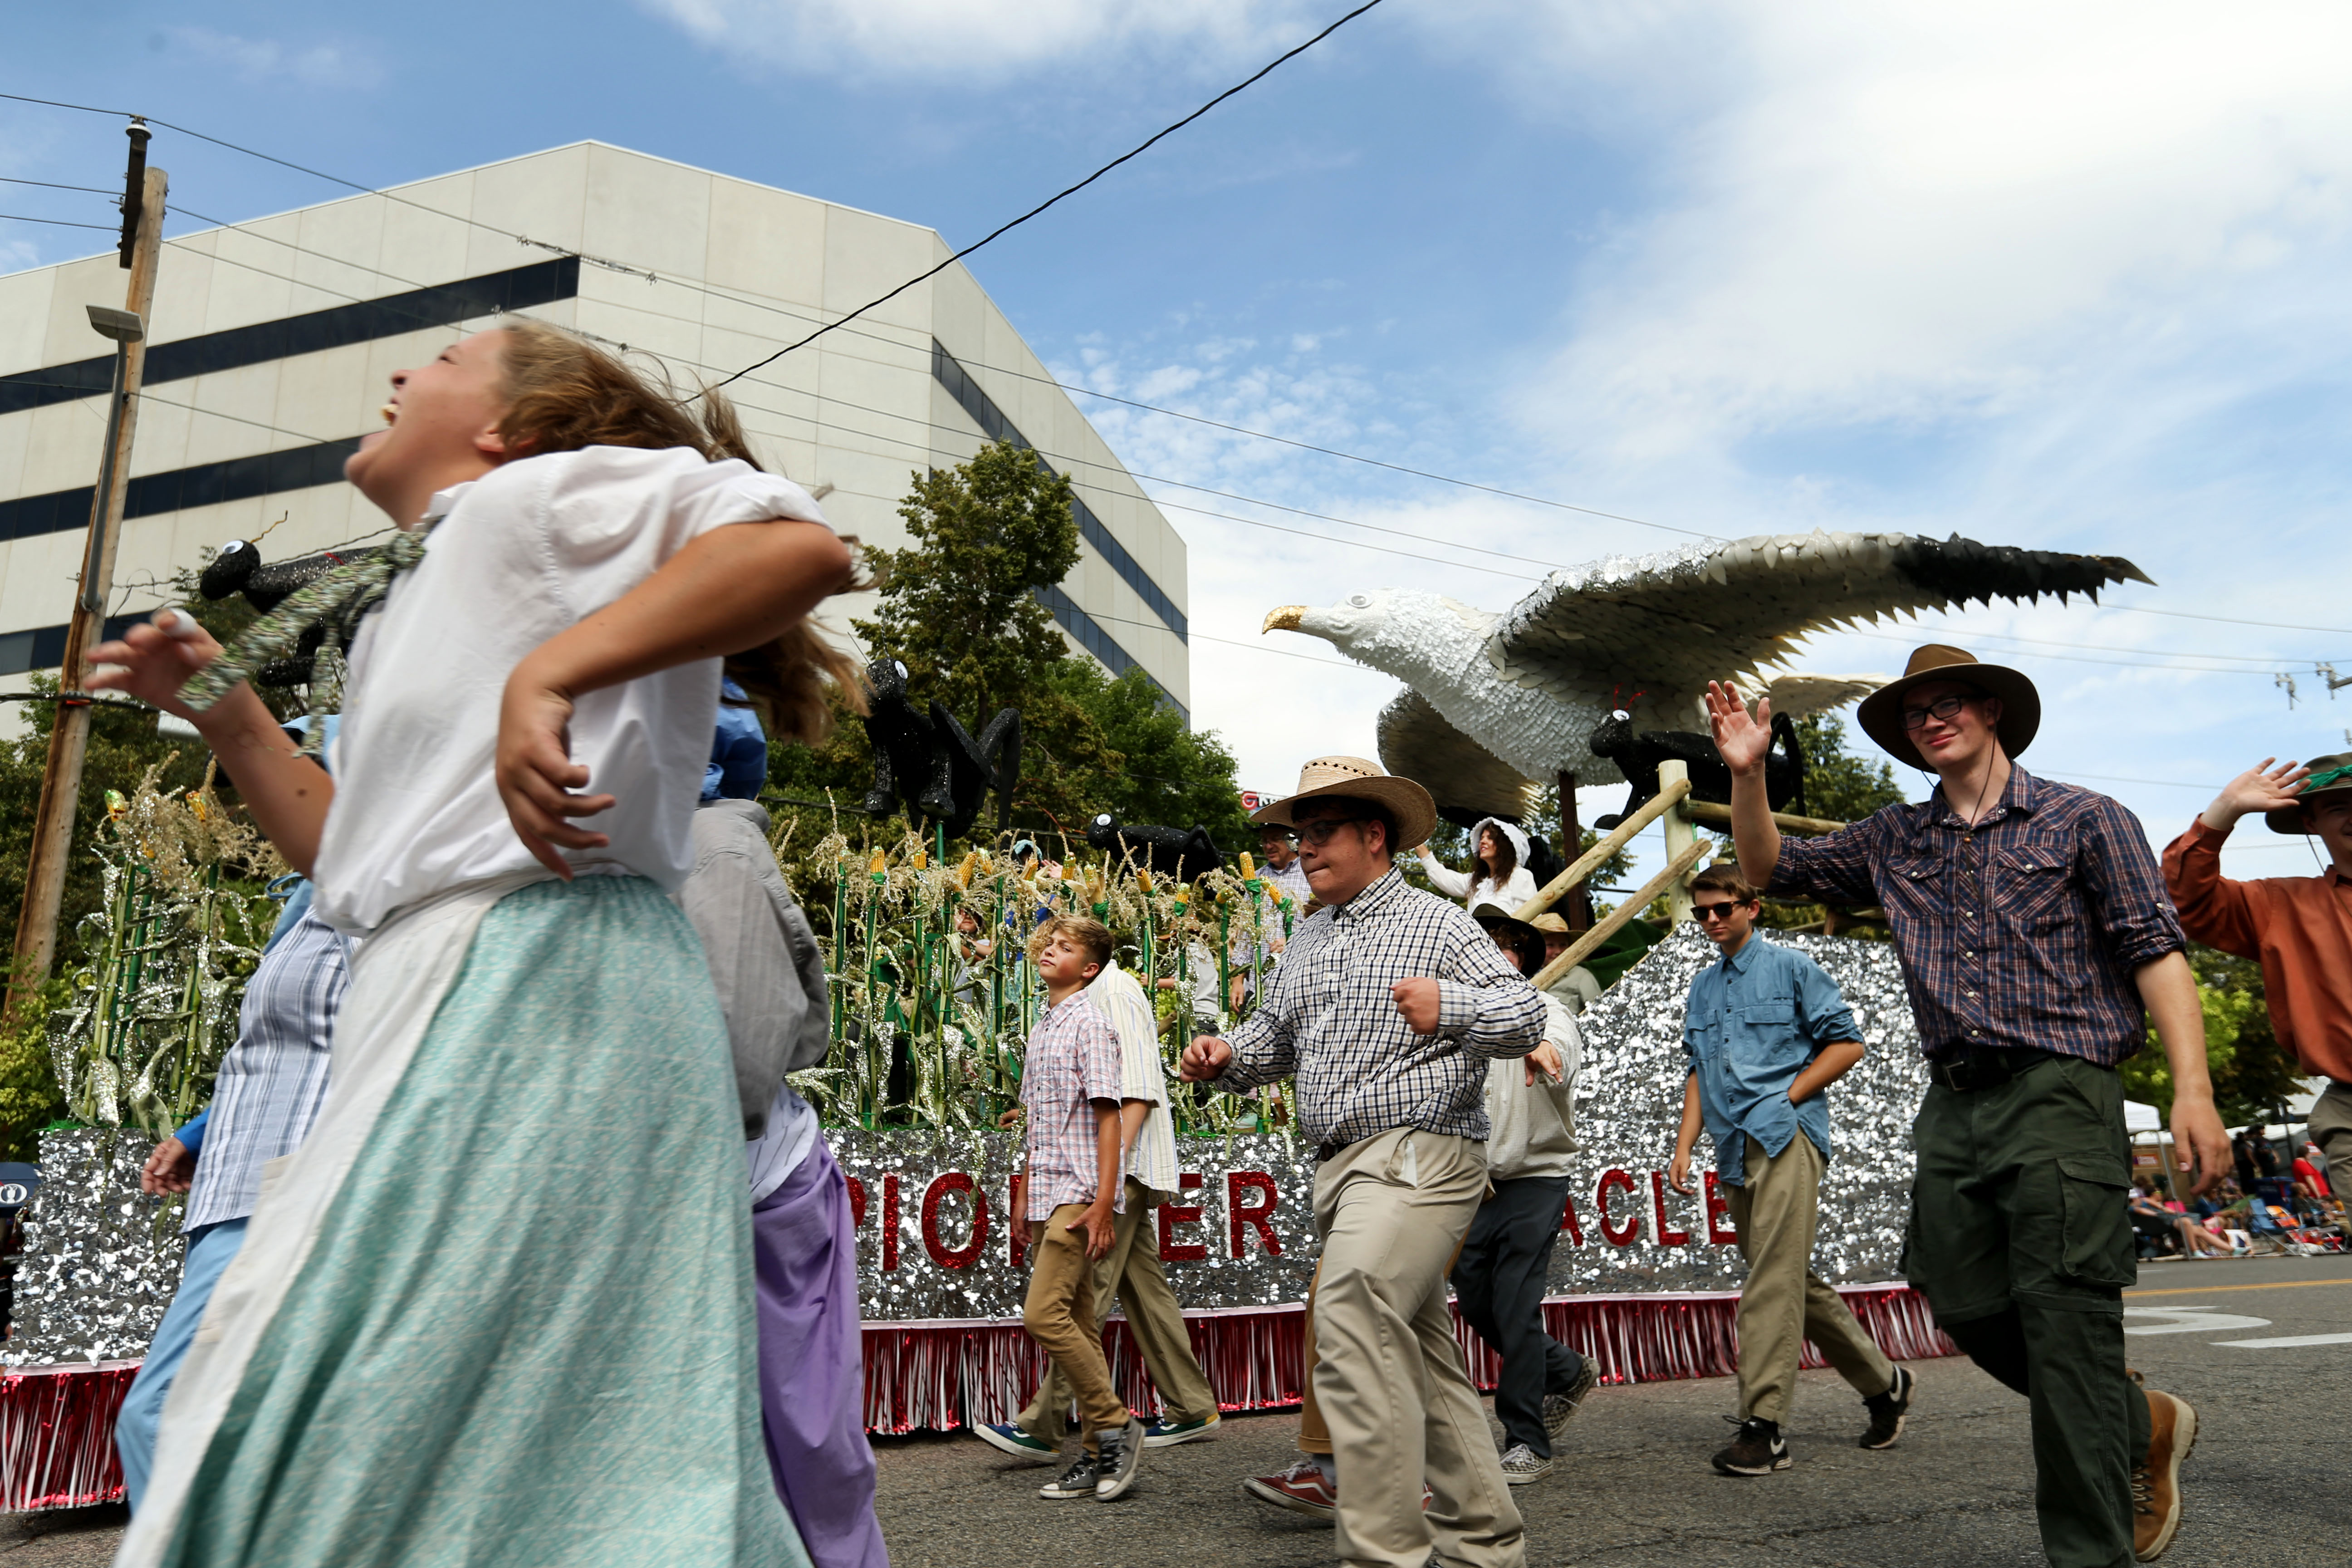 People dressed as pioneers march with a float decorated with seagulls during the Days of '47 Parade in Salt Lake City on Wednesday, July 24, 2019.